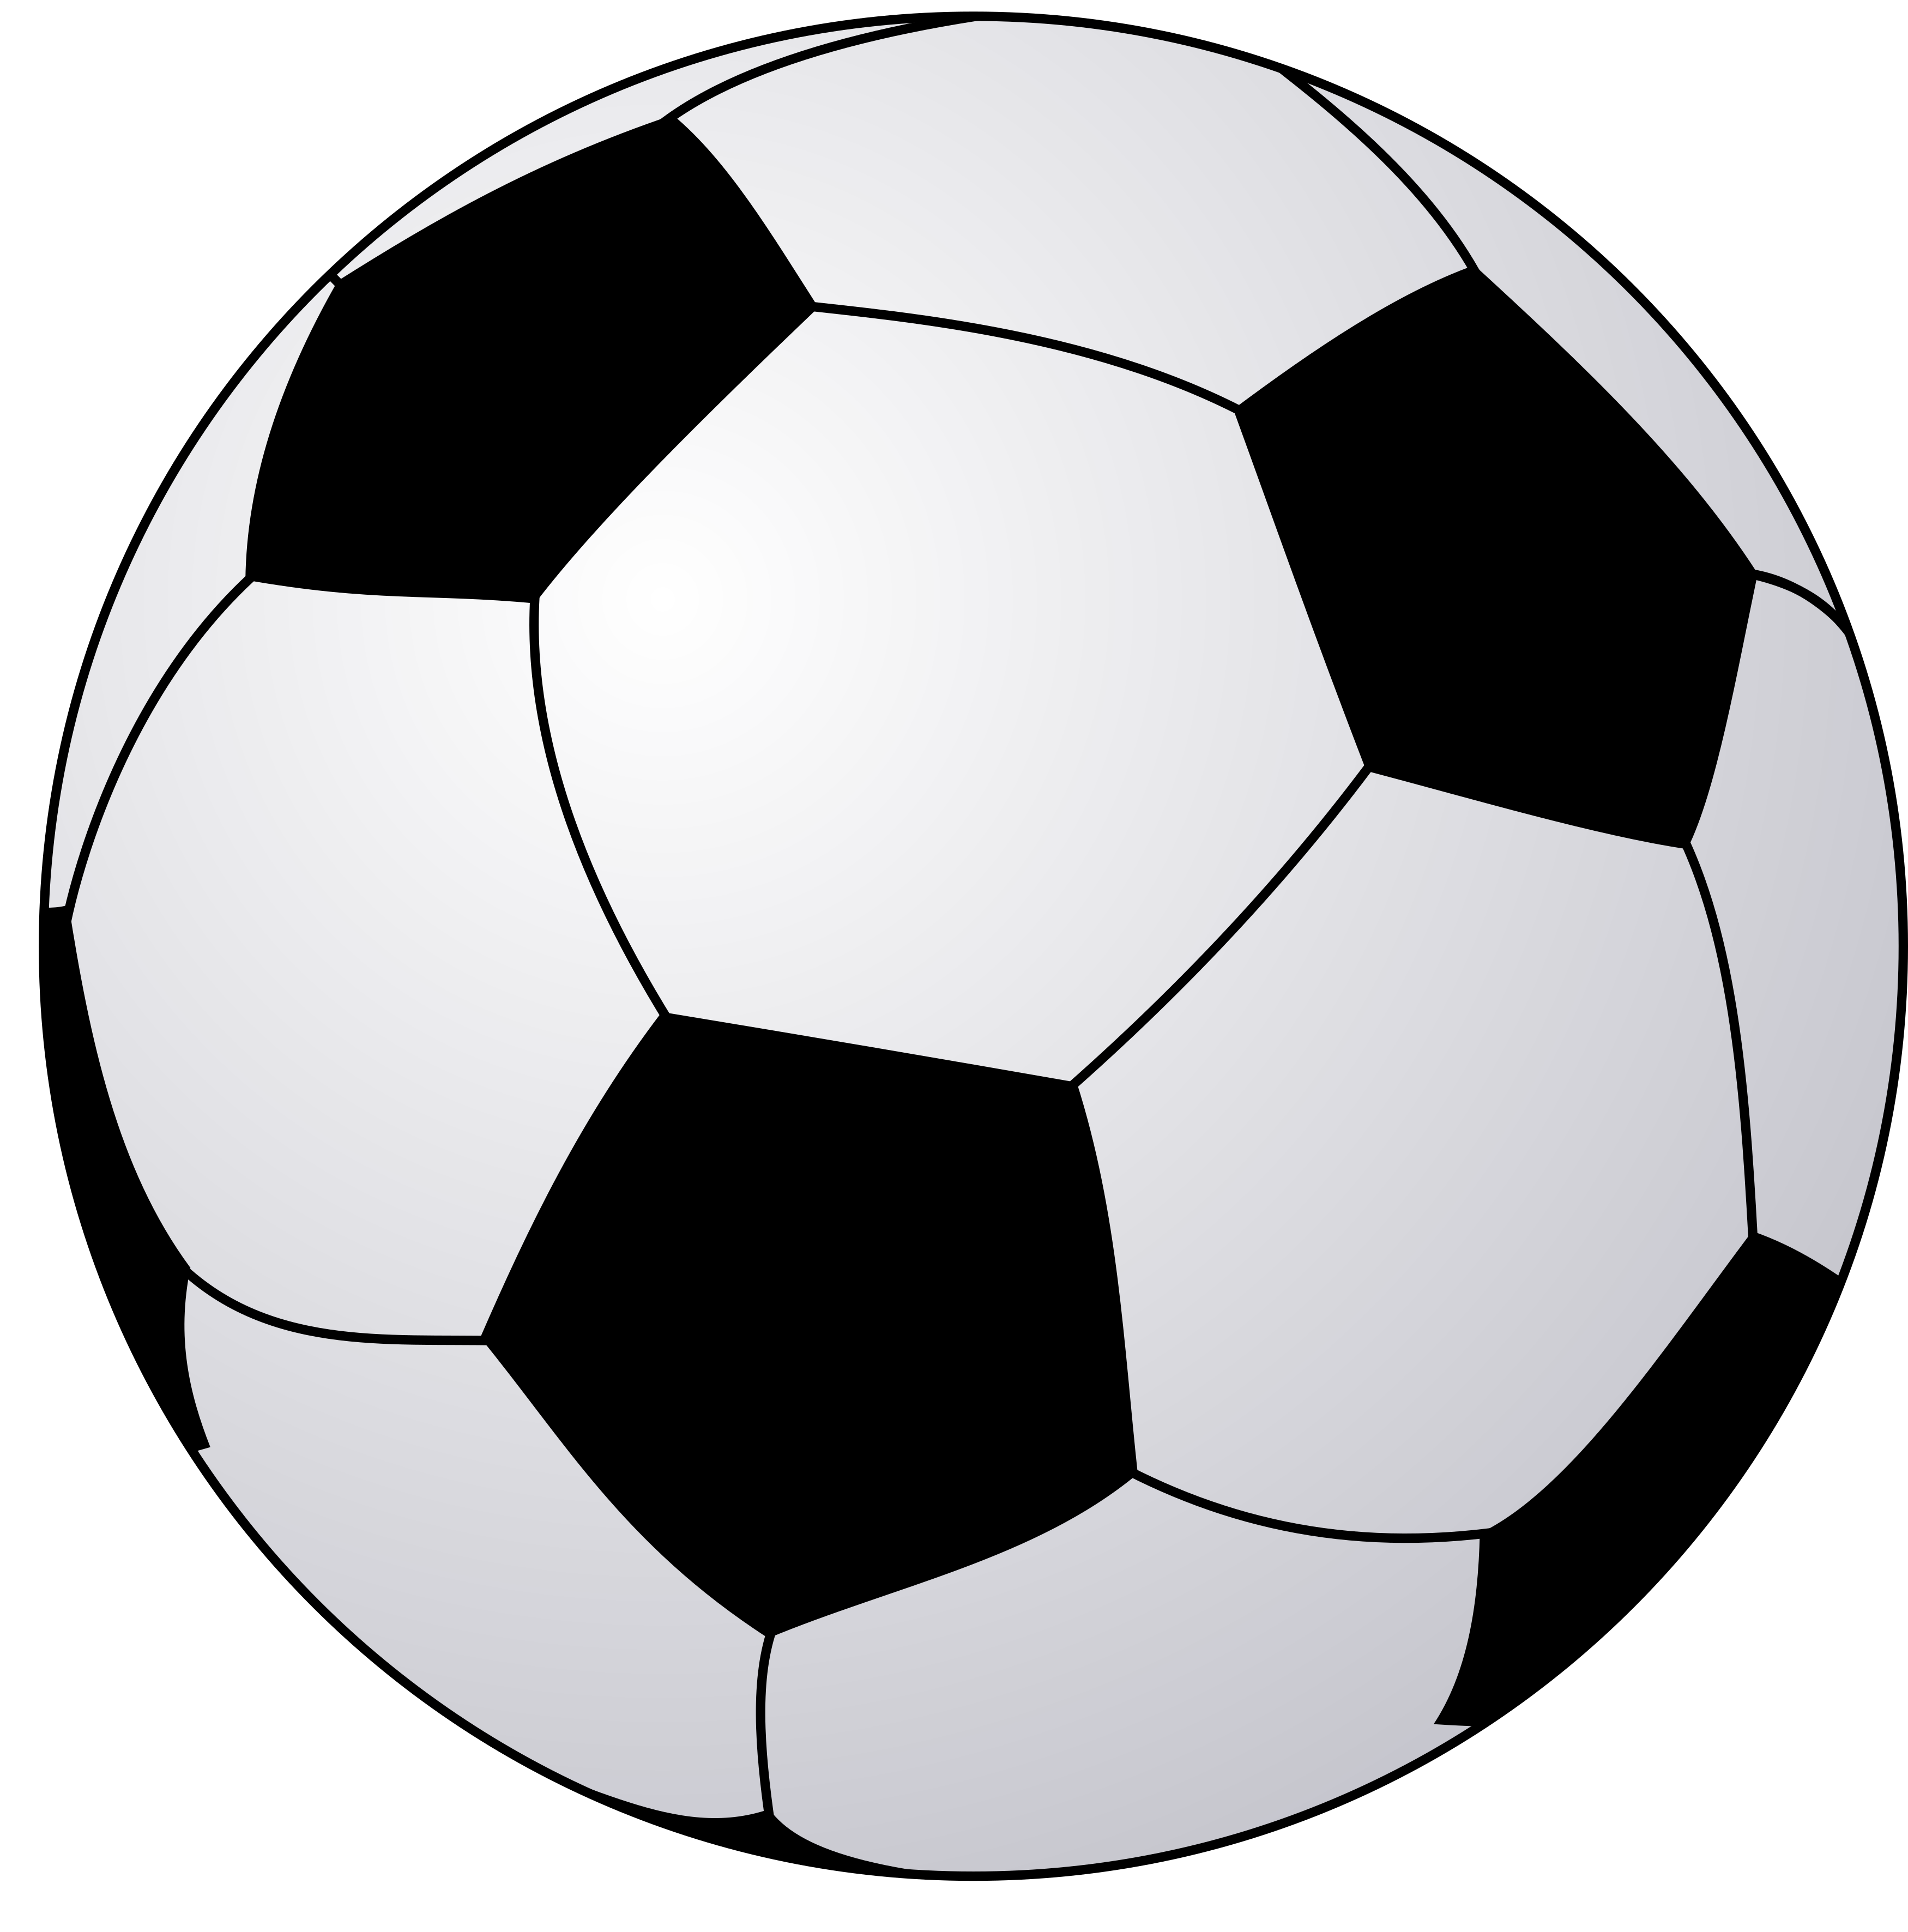 Bola png 7 png image related wallpapers thecheapjerseys Gallery